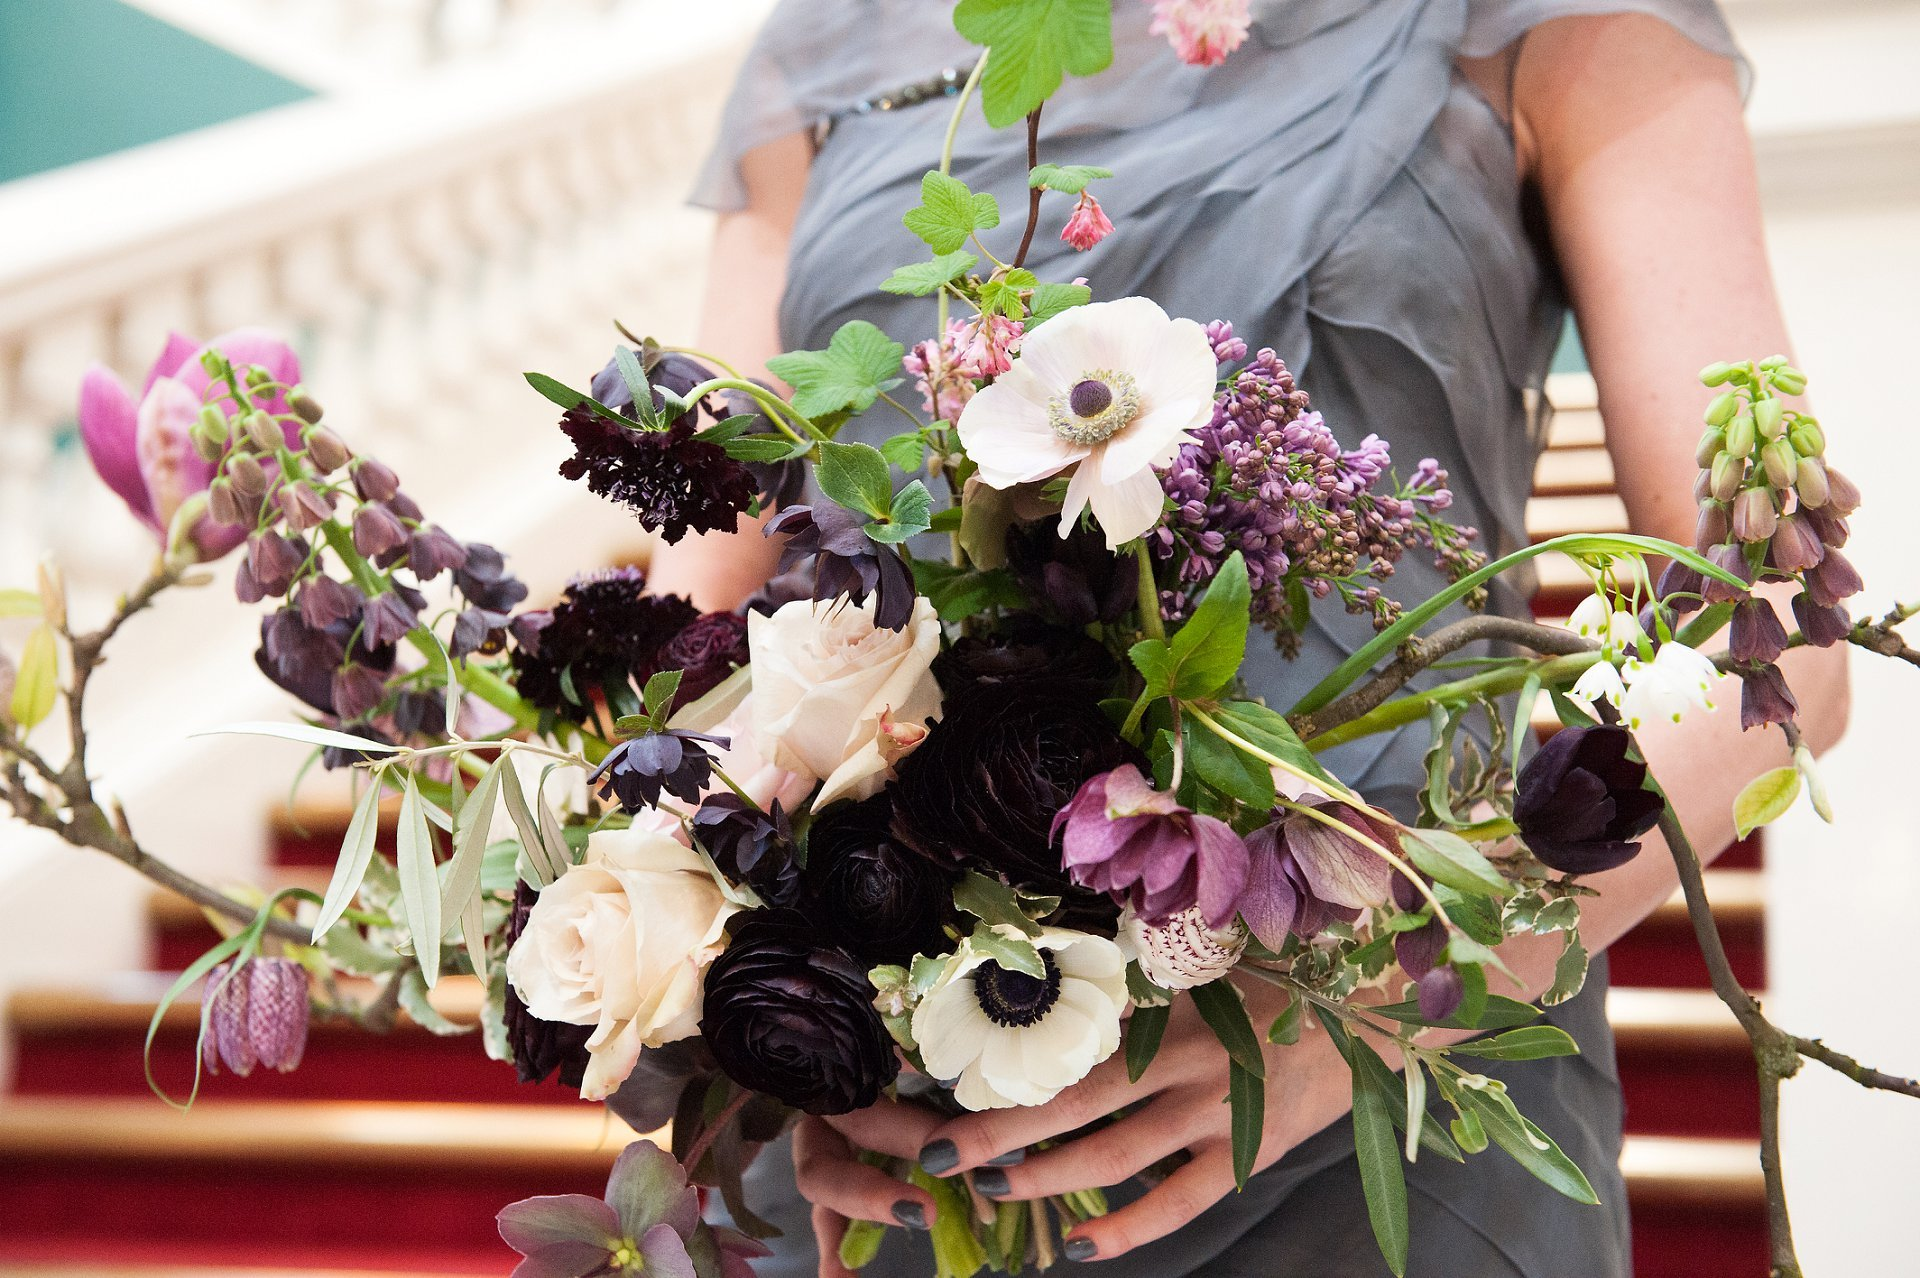 Blackheath florist Bloomologie created this stunning bridal bouquet for a Greenwich bride getting married at Woolwich Town Hall, in south London.